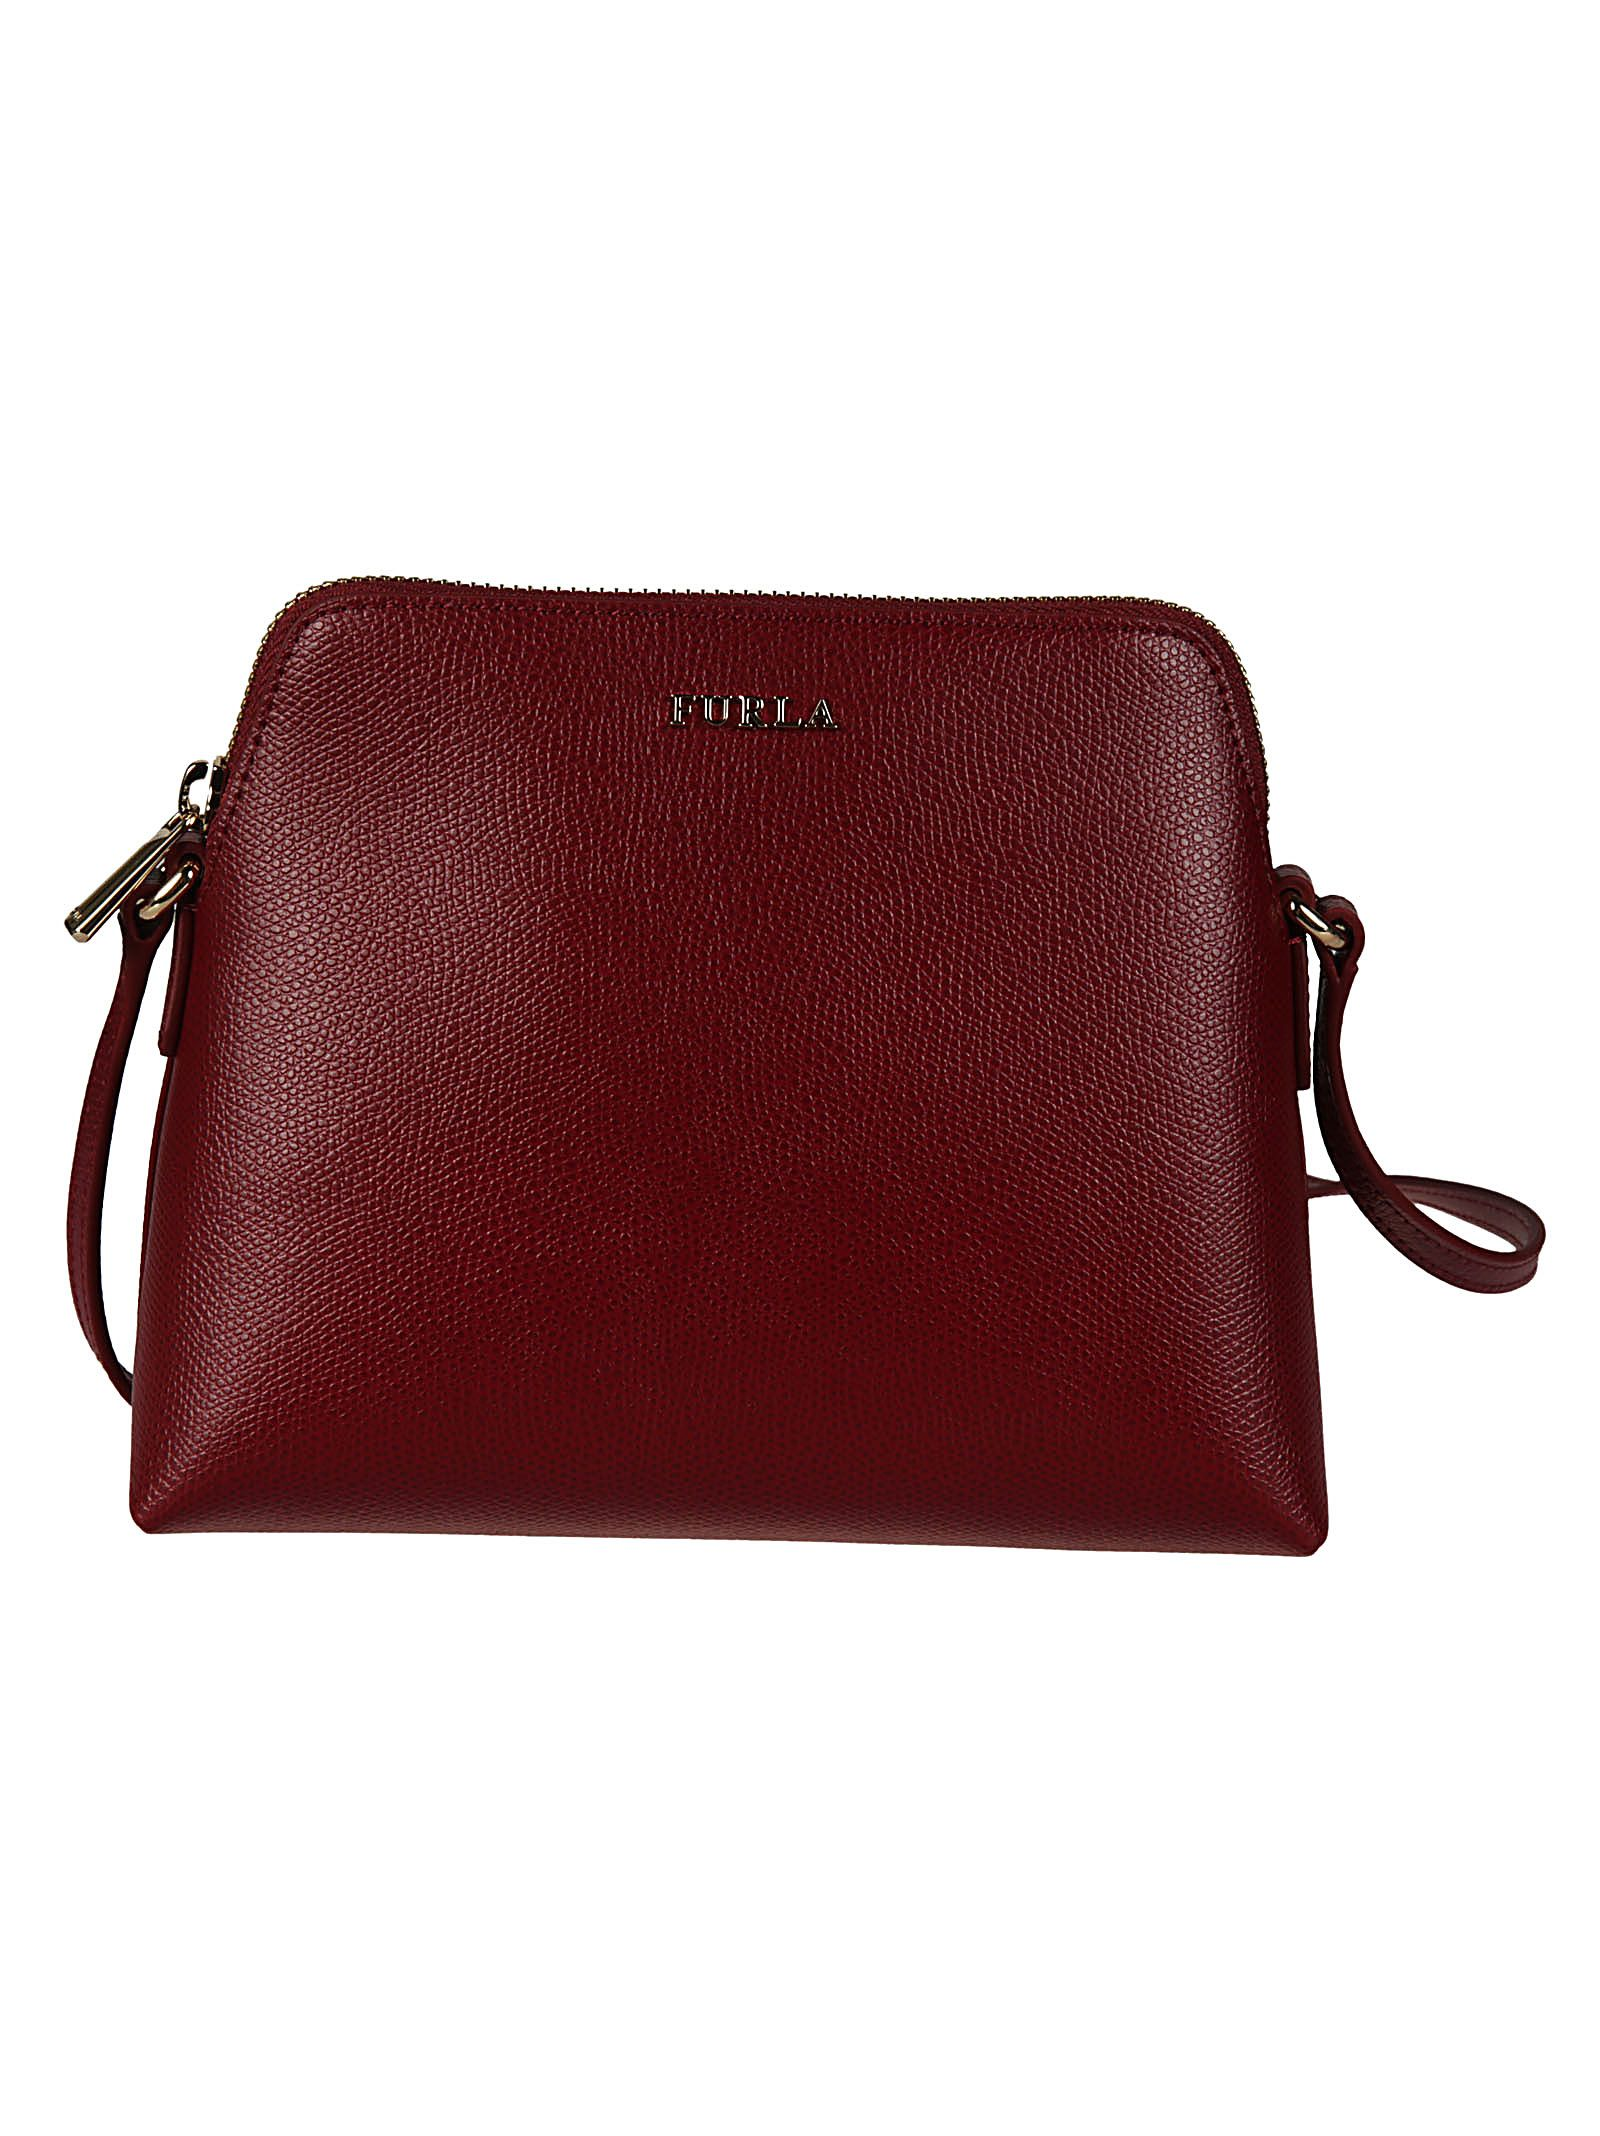 Furla Boheme Shoulder Bag